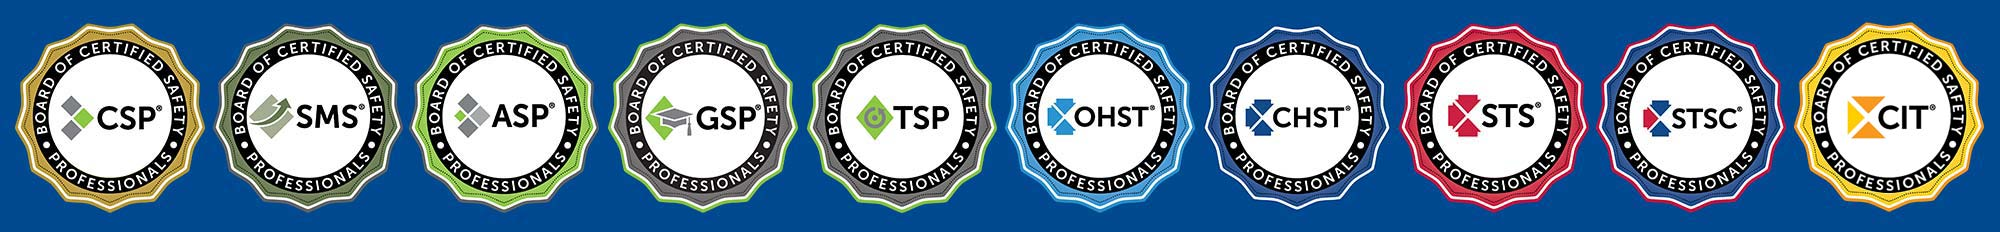 BCSP Credential Directory